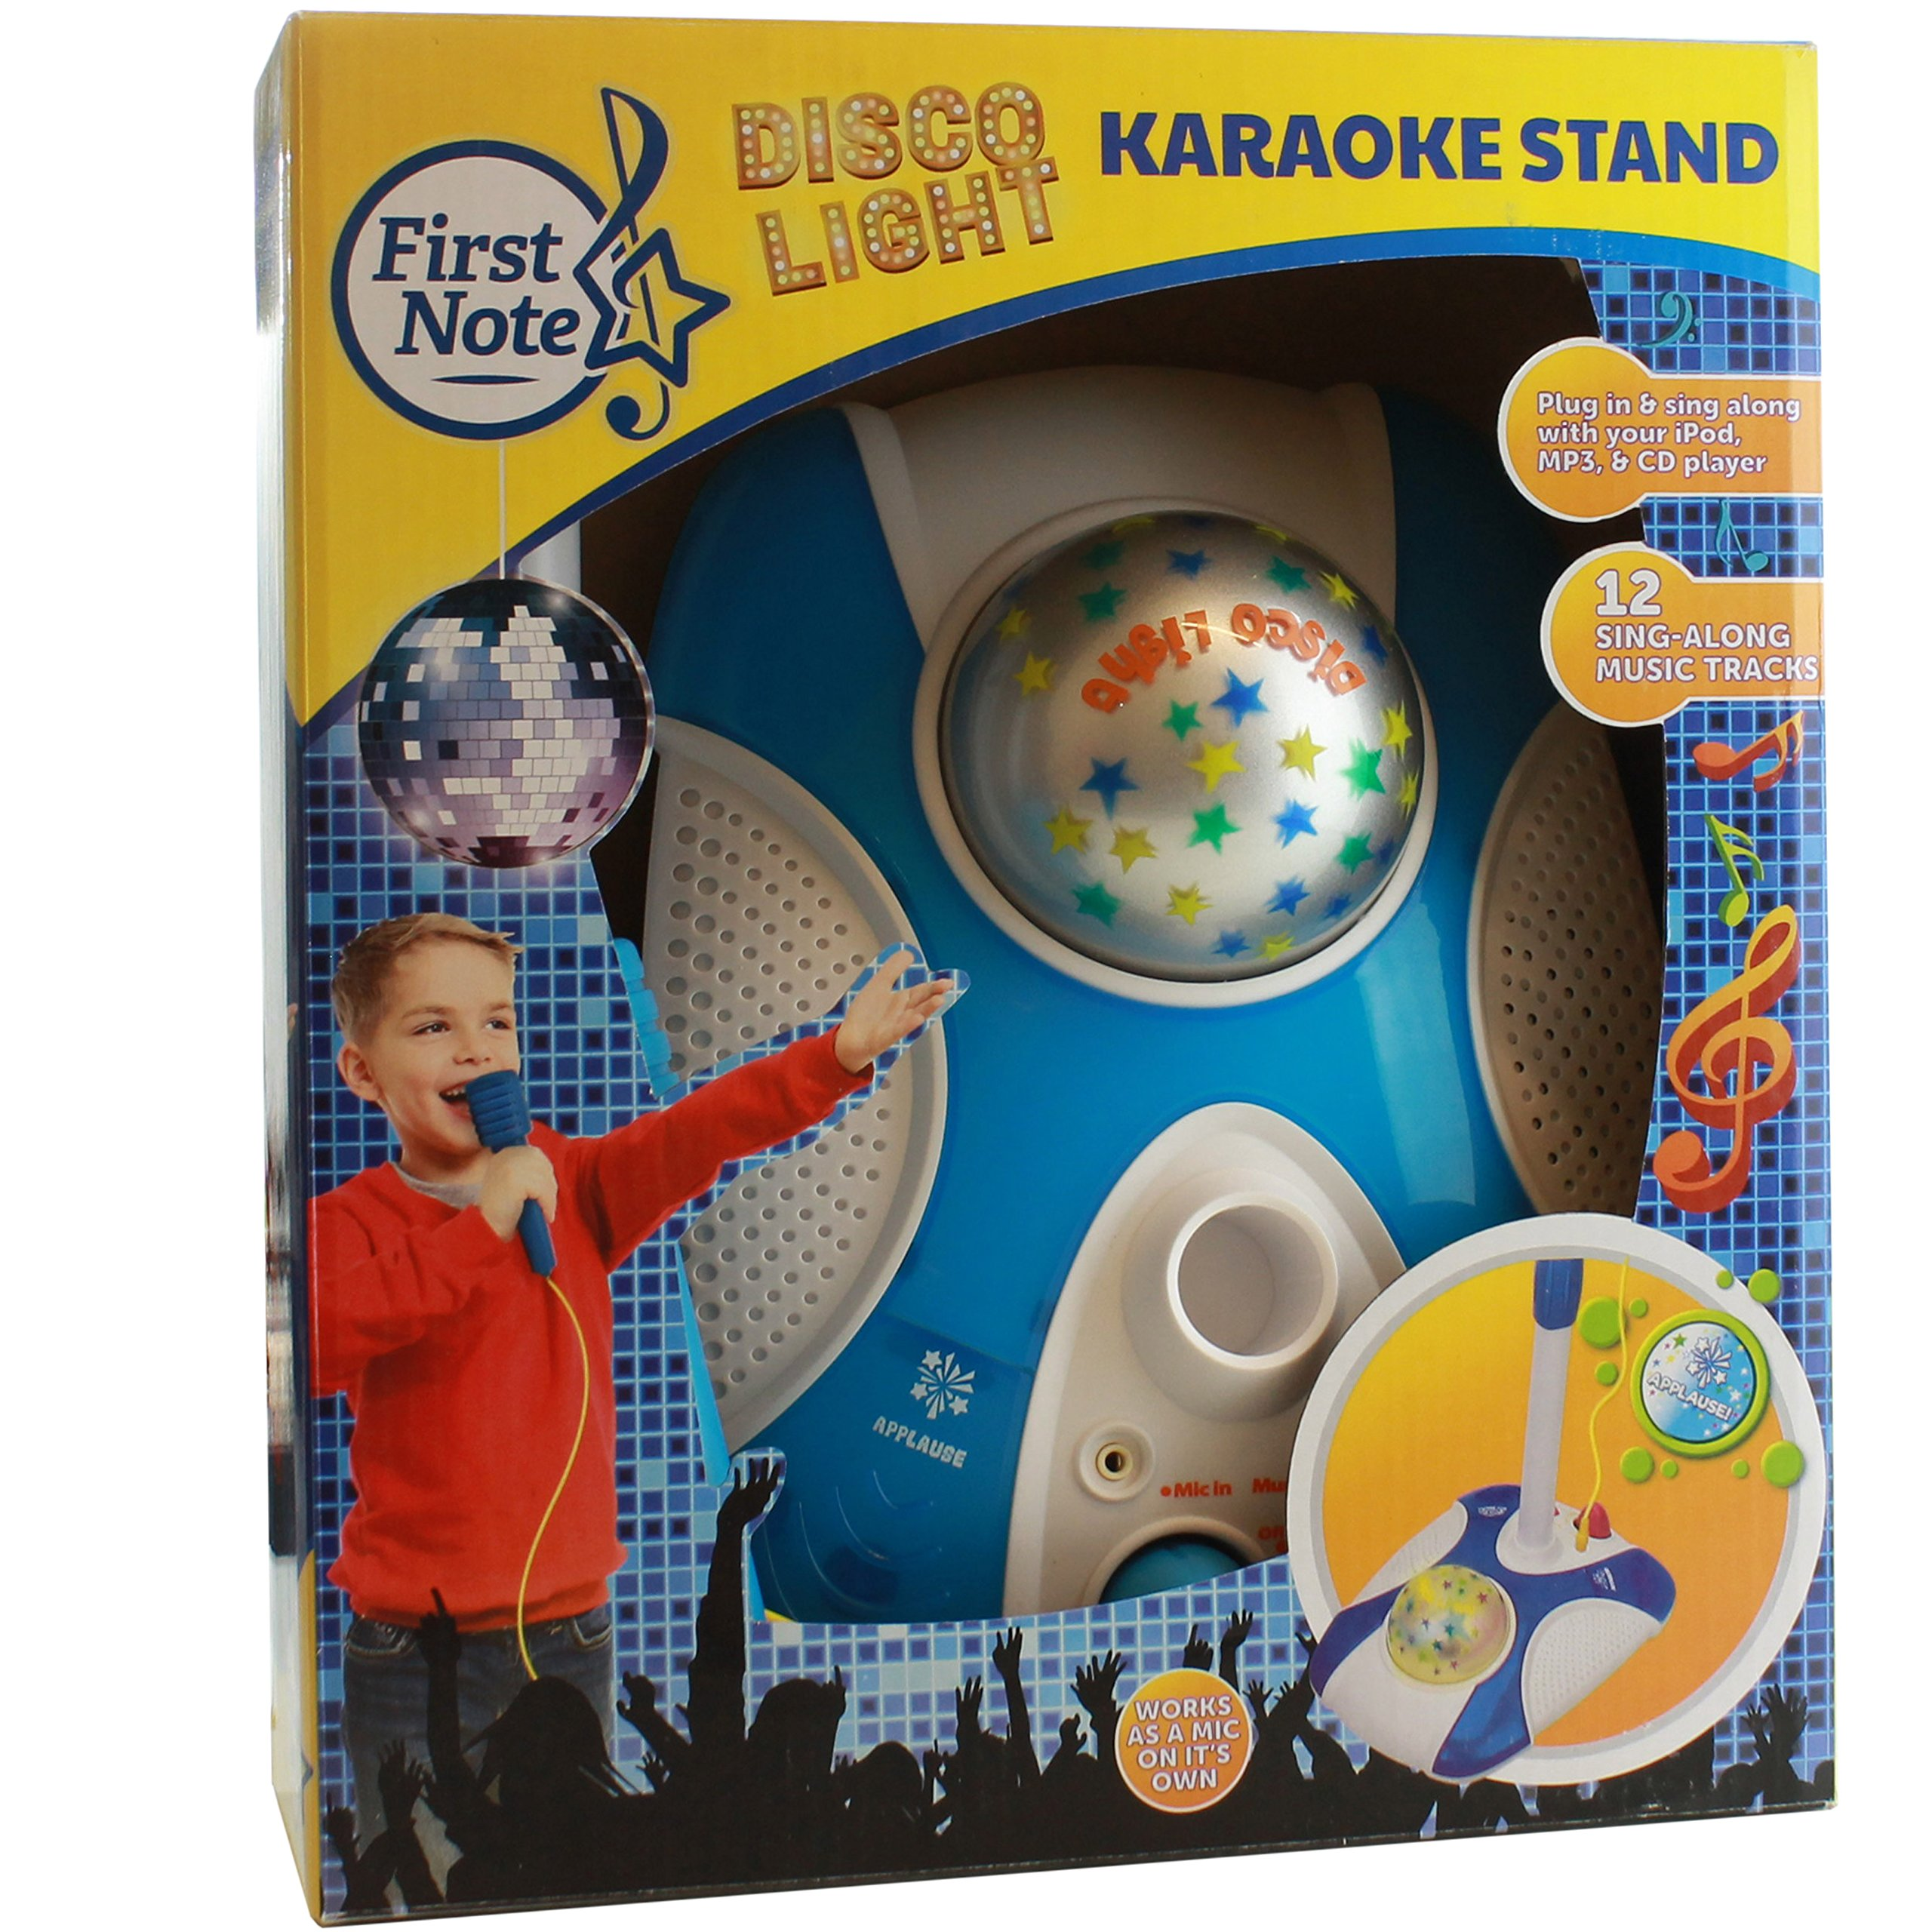 Karaoke Disco Light Adjustable Mic & Speaker Stand! Includes 12 pre-Loaded Popular Songs and Connects to iPods, Smartphones & MP3 Players (Blue) by IQ Toys (Image #6)